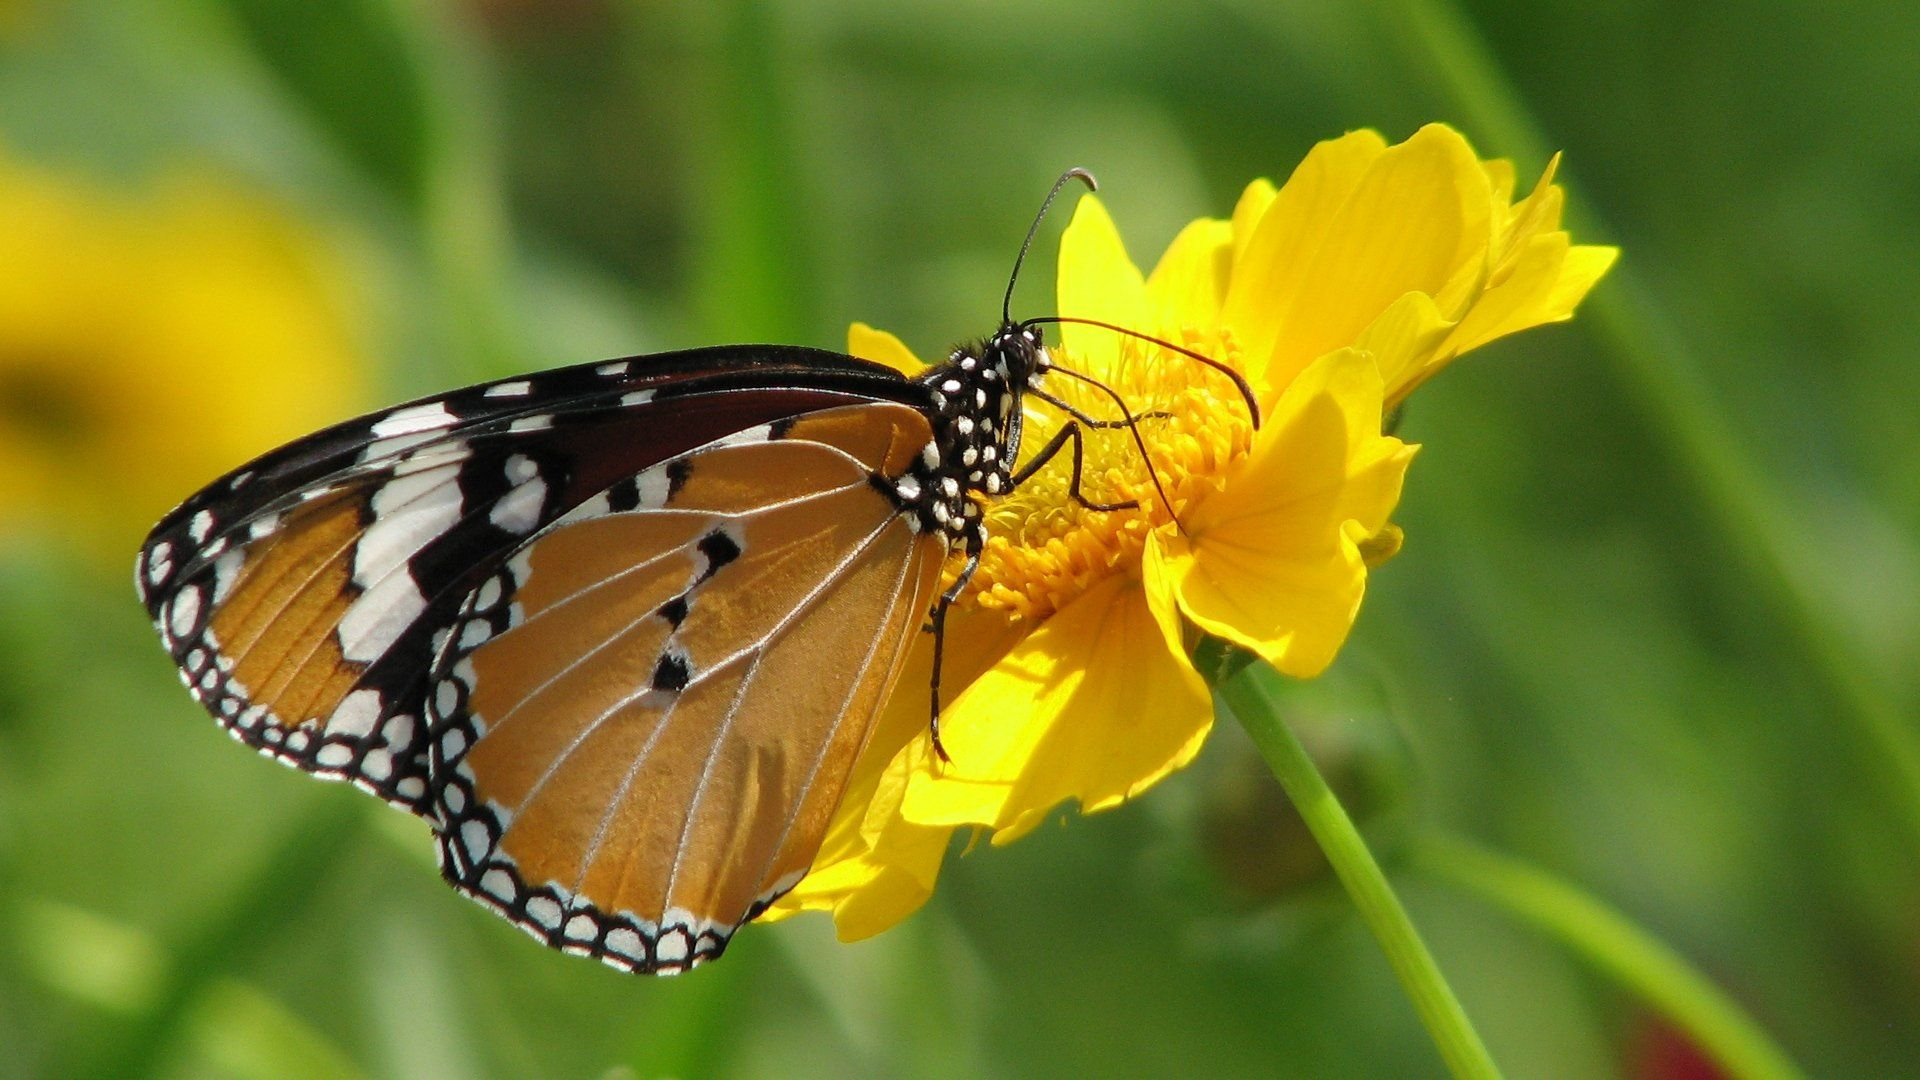 Awesome Butterfly High Definition Wallpaper Wallpaper Nature Flowers Butterfly Wallpaper Yellow Wallpaper